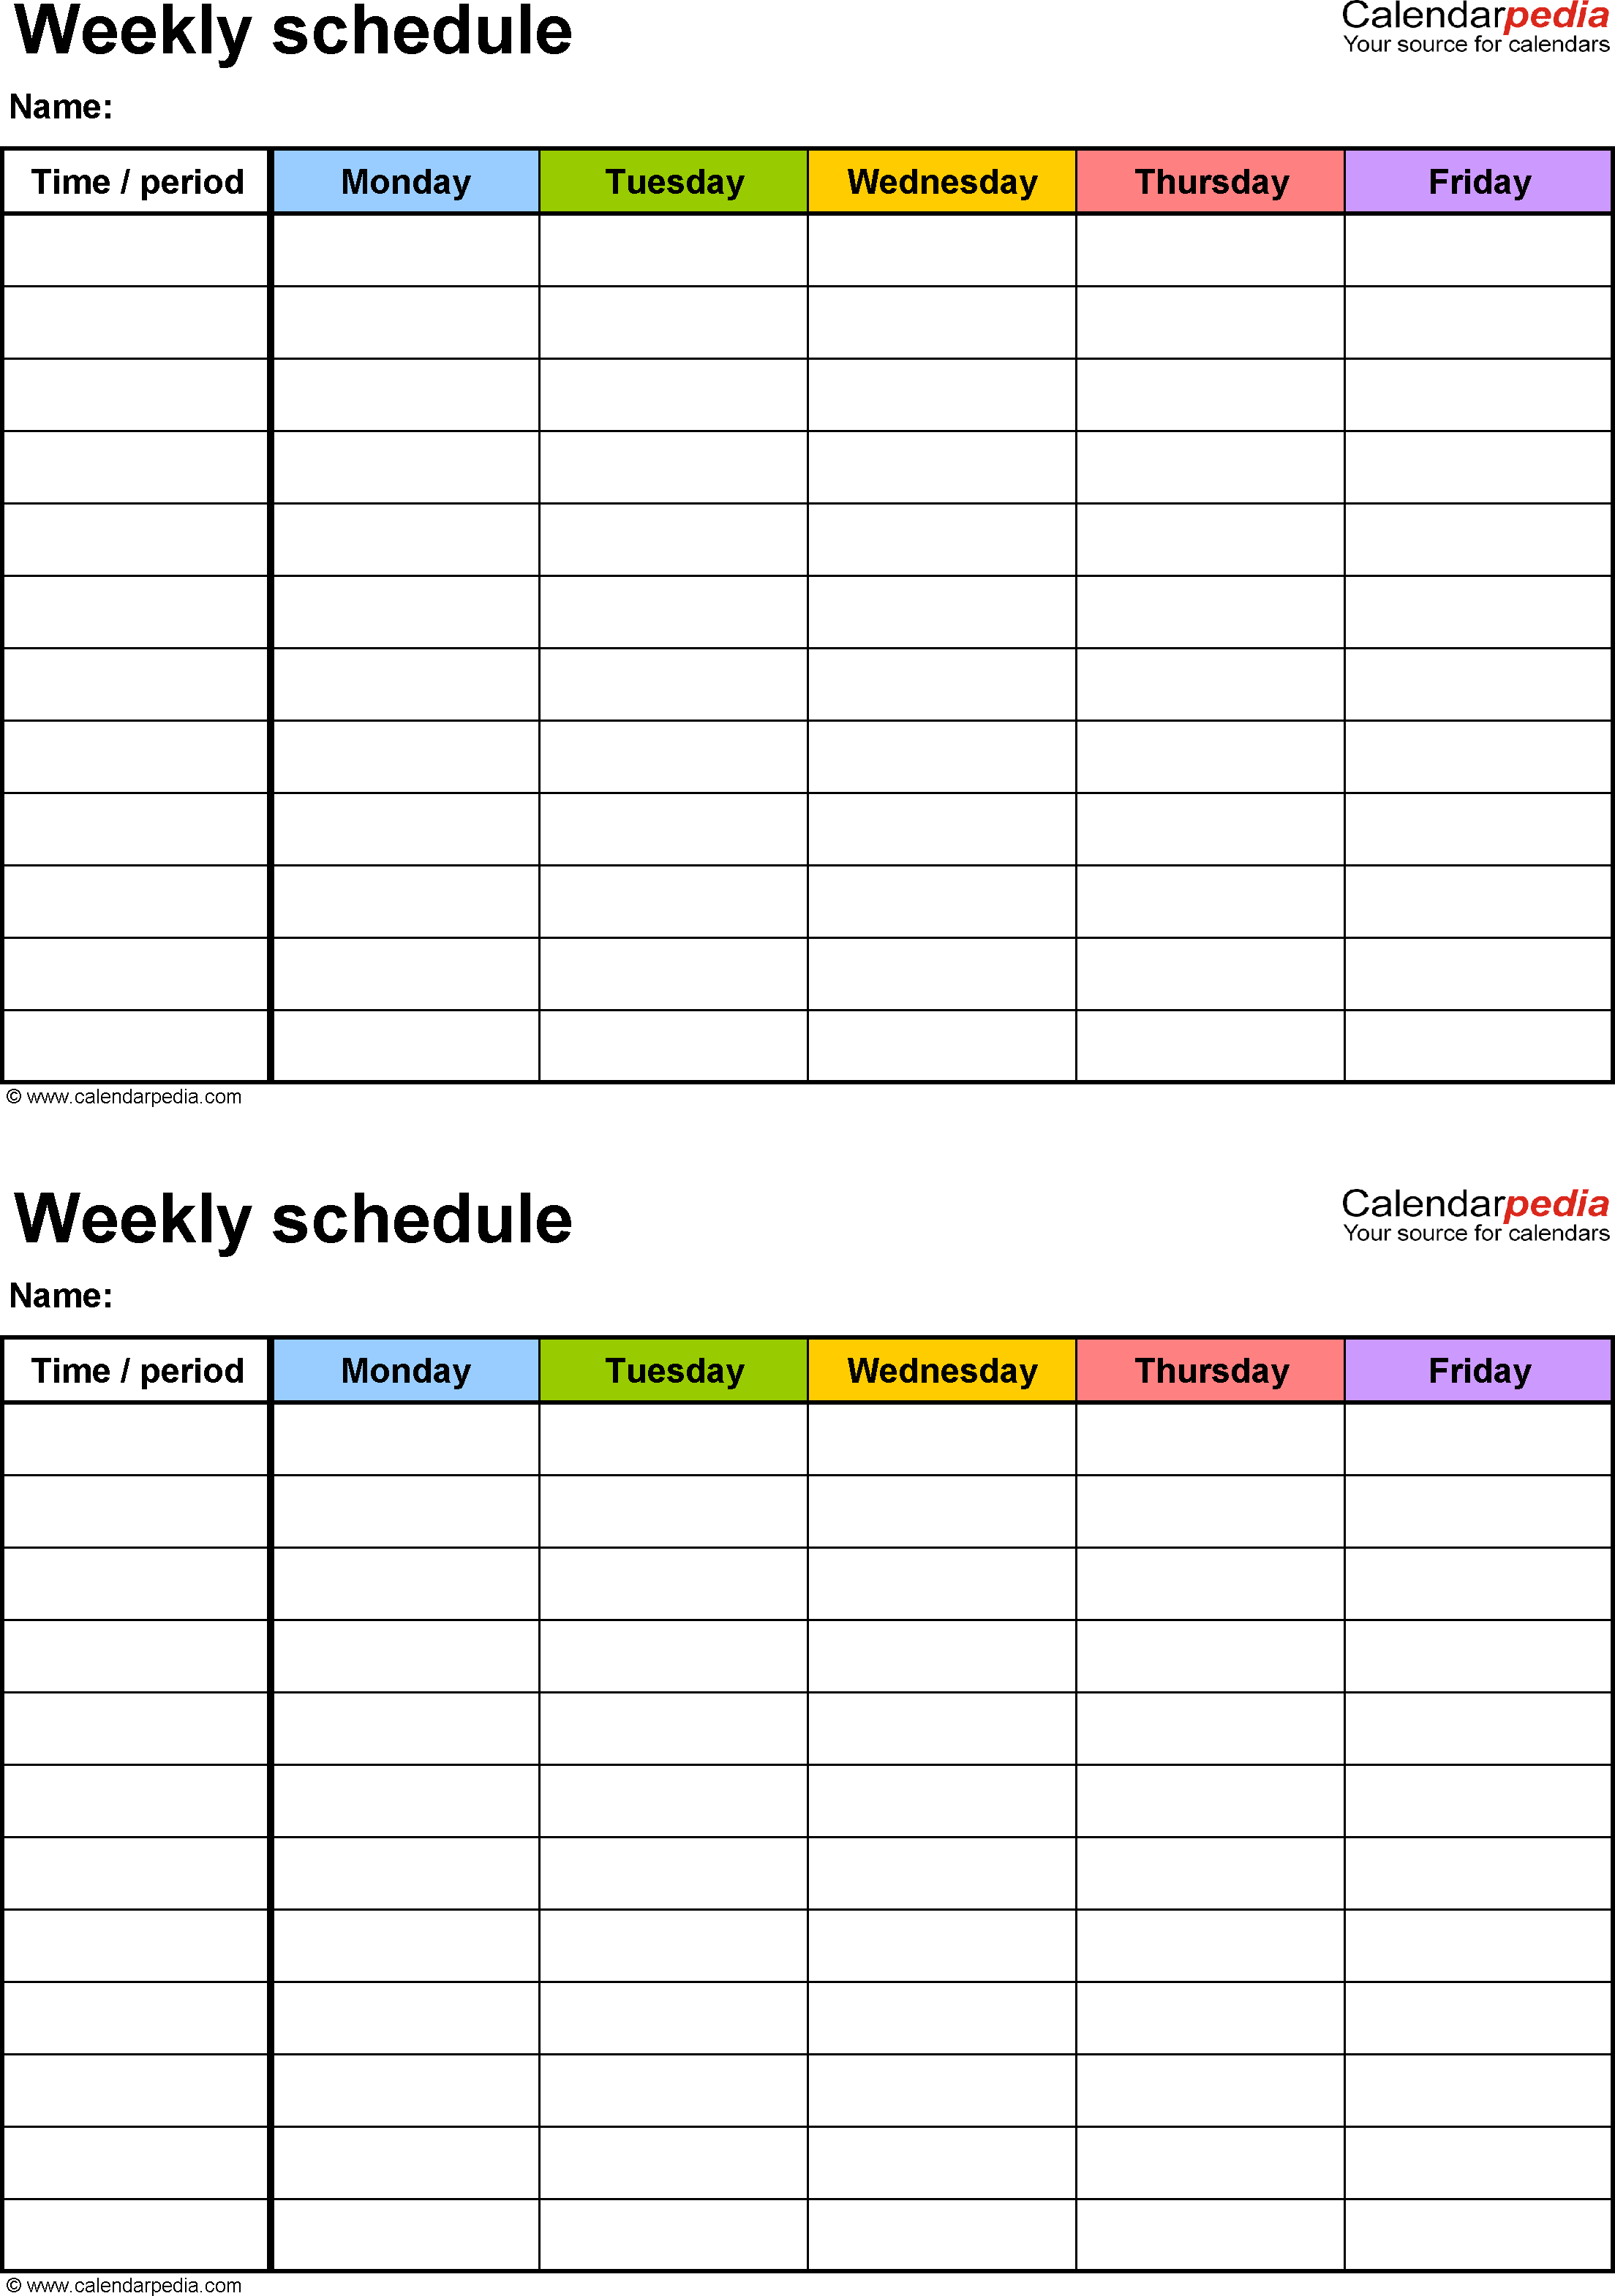 Free Weekly Schedule Templates For Pdf - 18 Templates with Free Printable Weekly Schedule Template